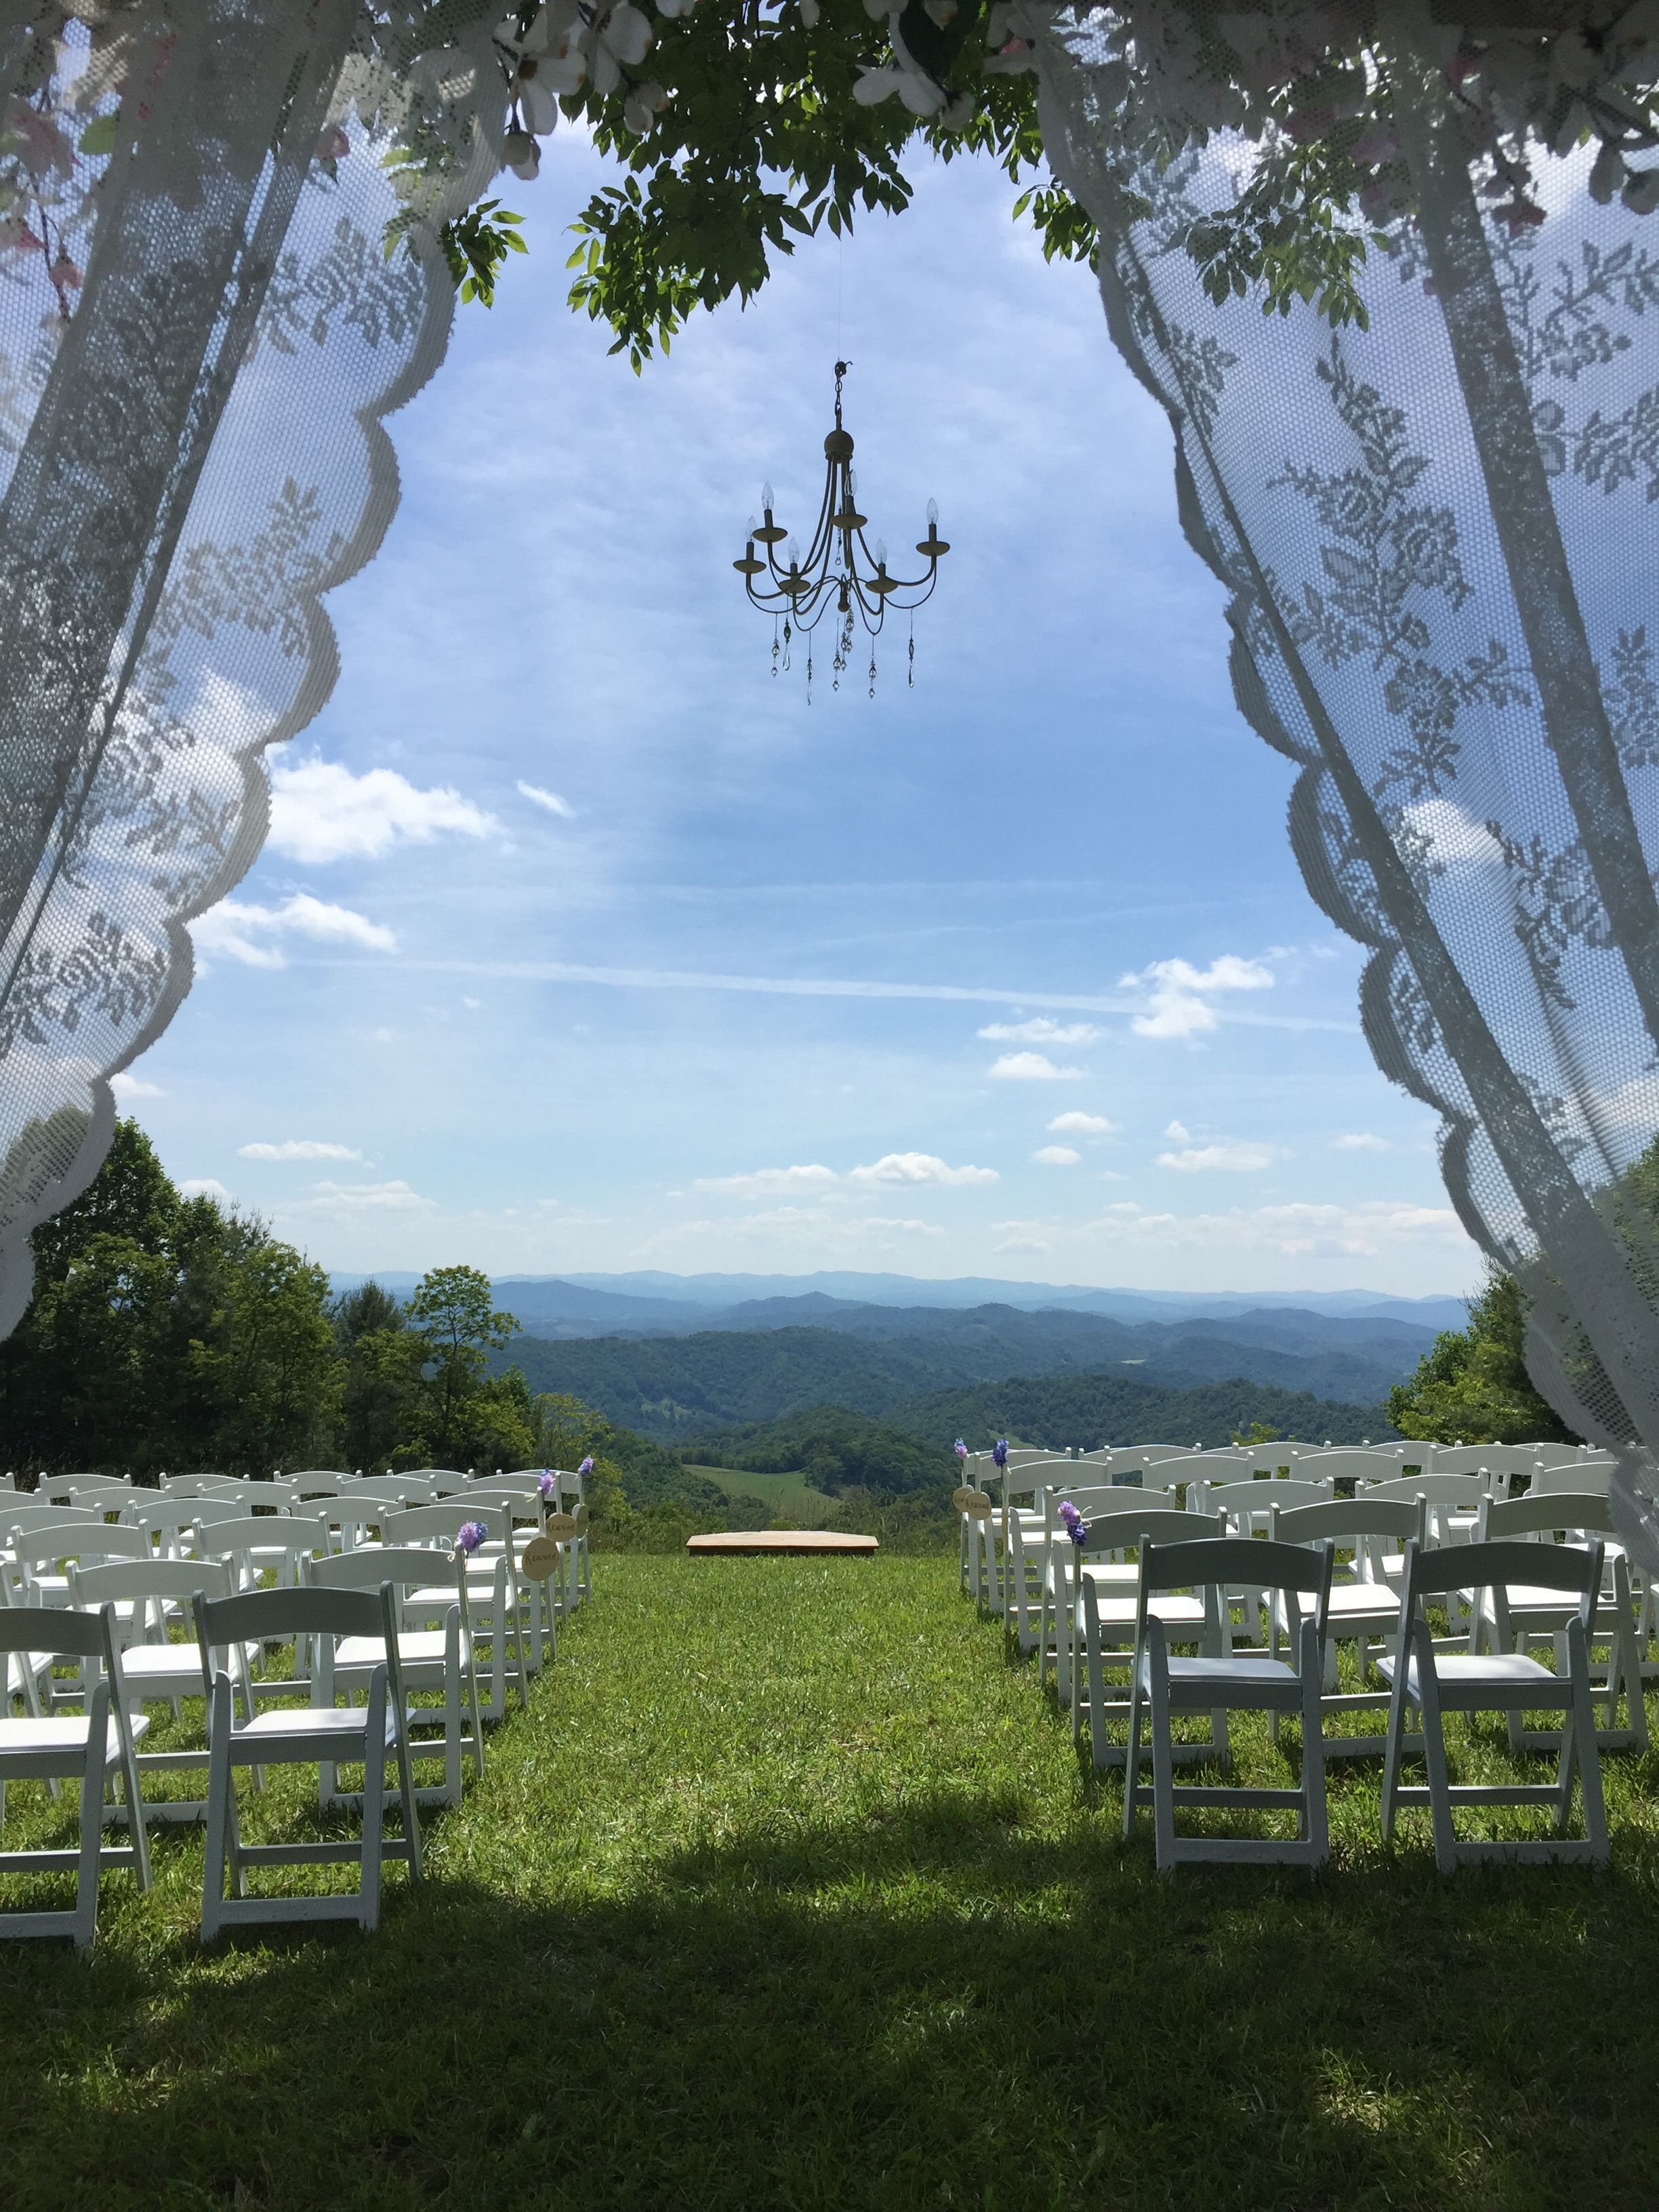 Pin by Christen Lee-erica on wedding | Event venues, Blue ...